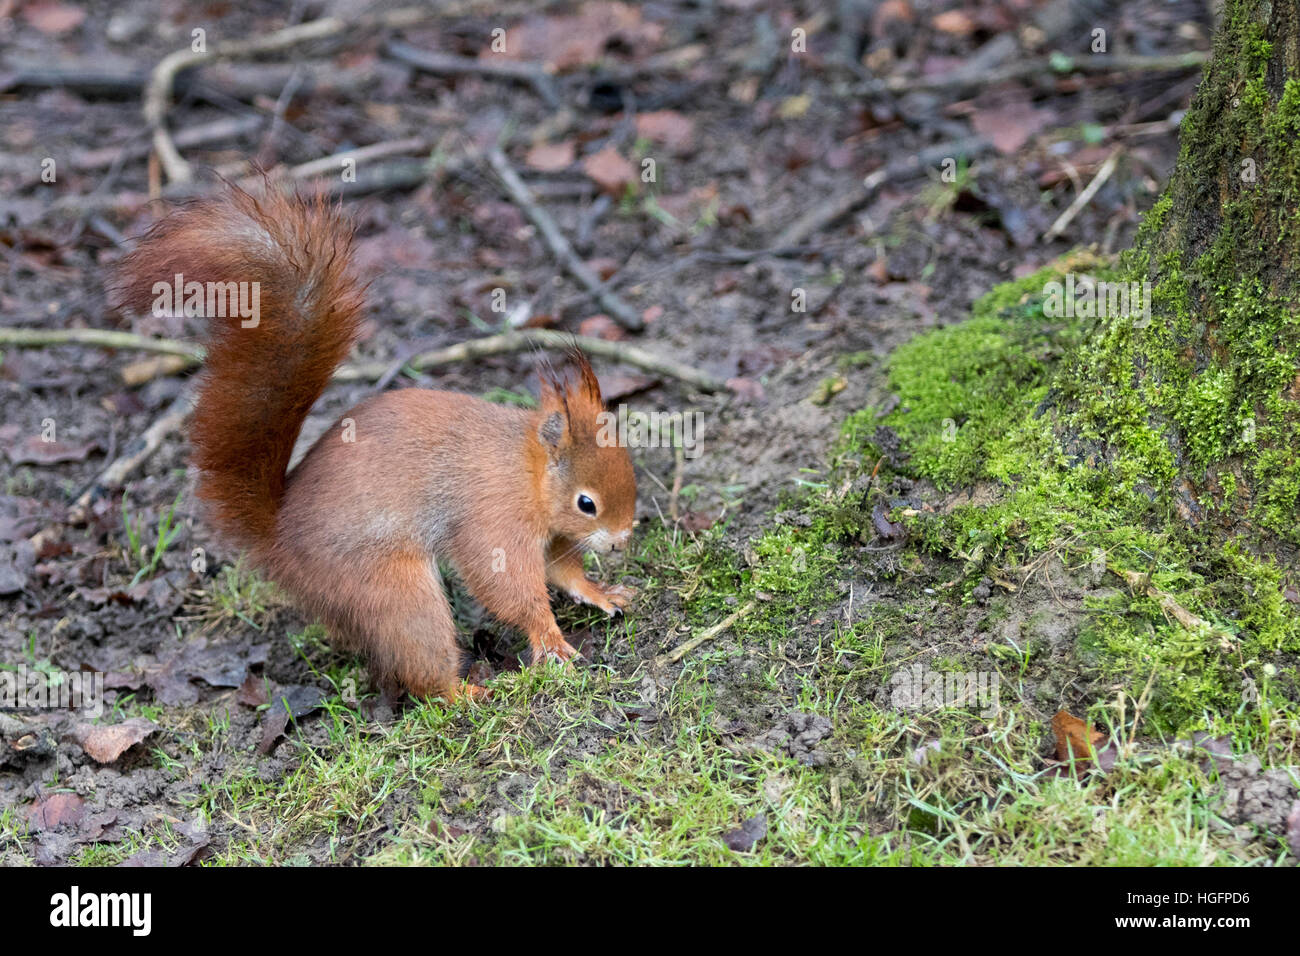 Red Squirrel ( Sciurus vulgaris ) on The Ground Hiding Food - Stock Image